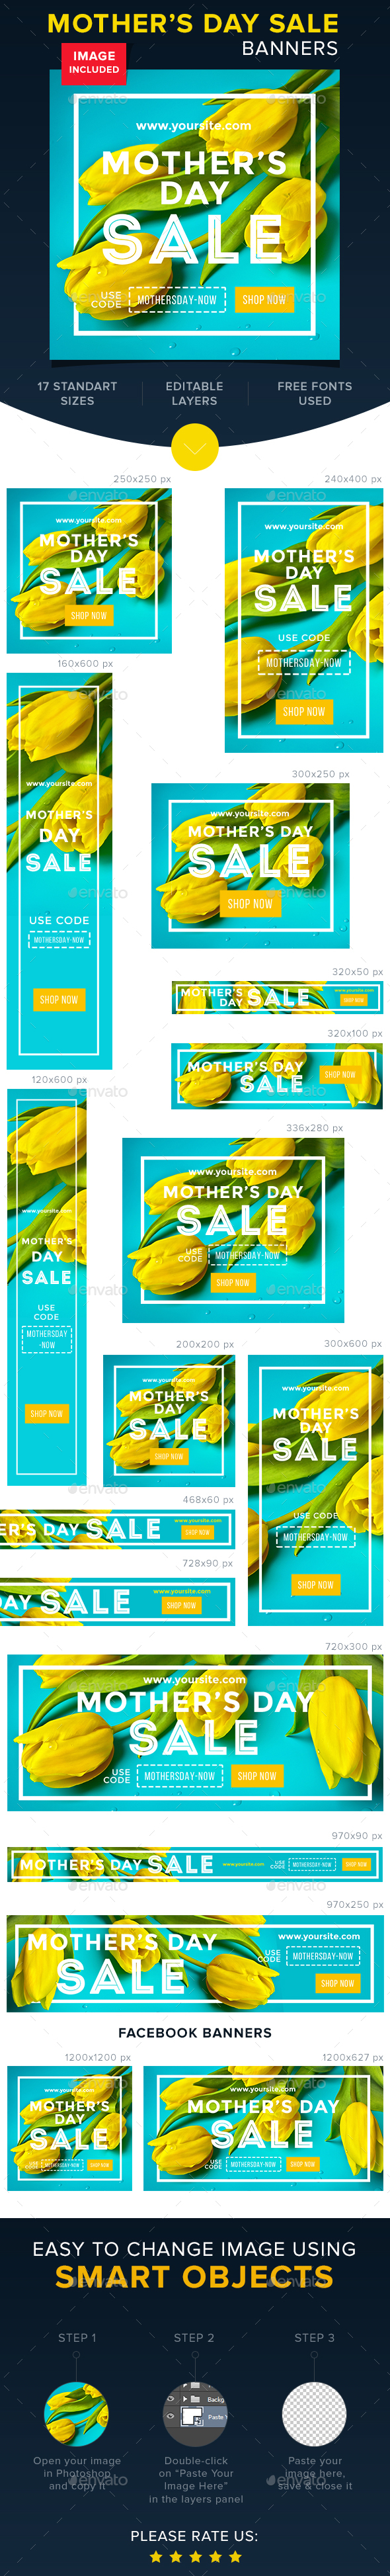 Mother's Day Sale Banners  - Banners & Ads Web Elements